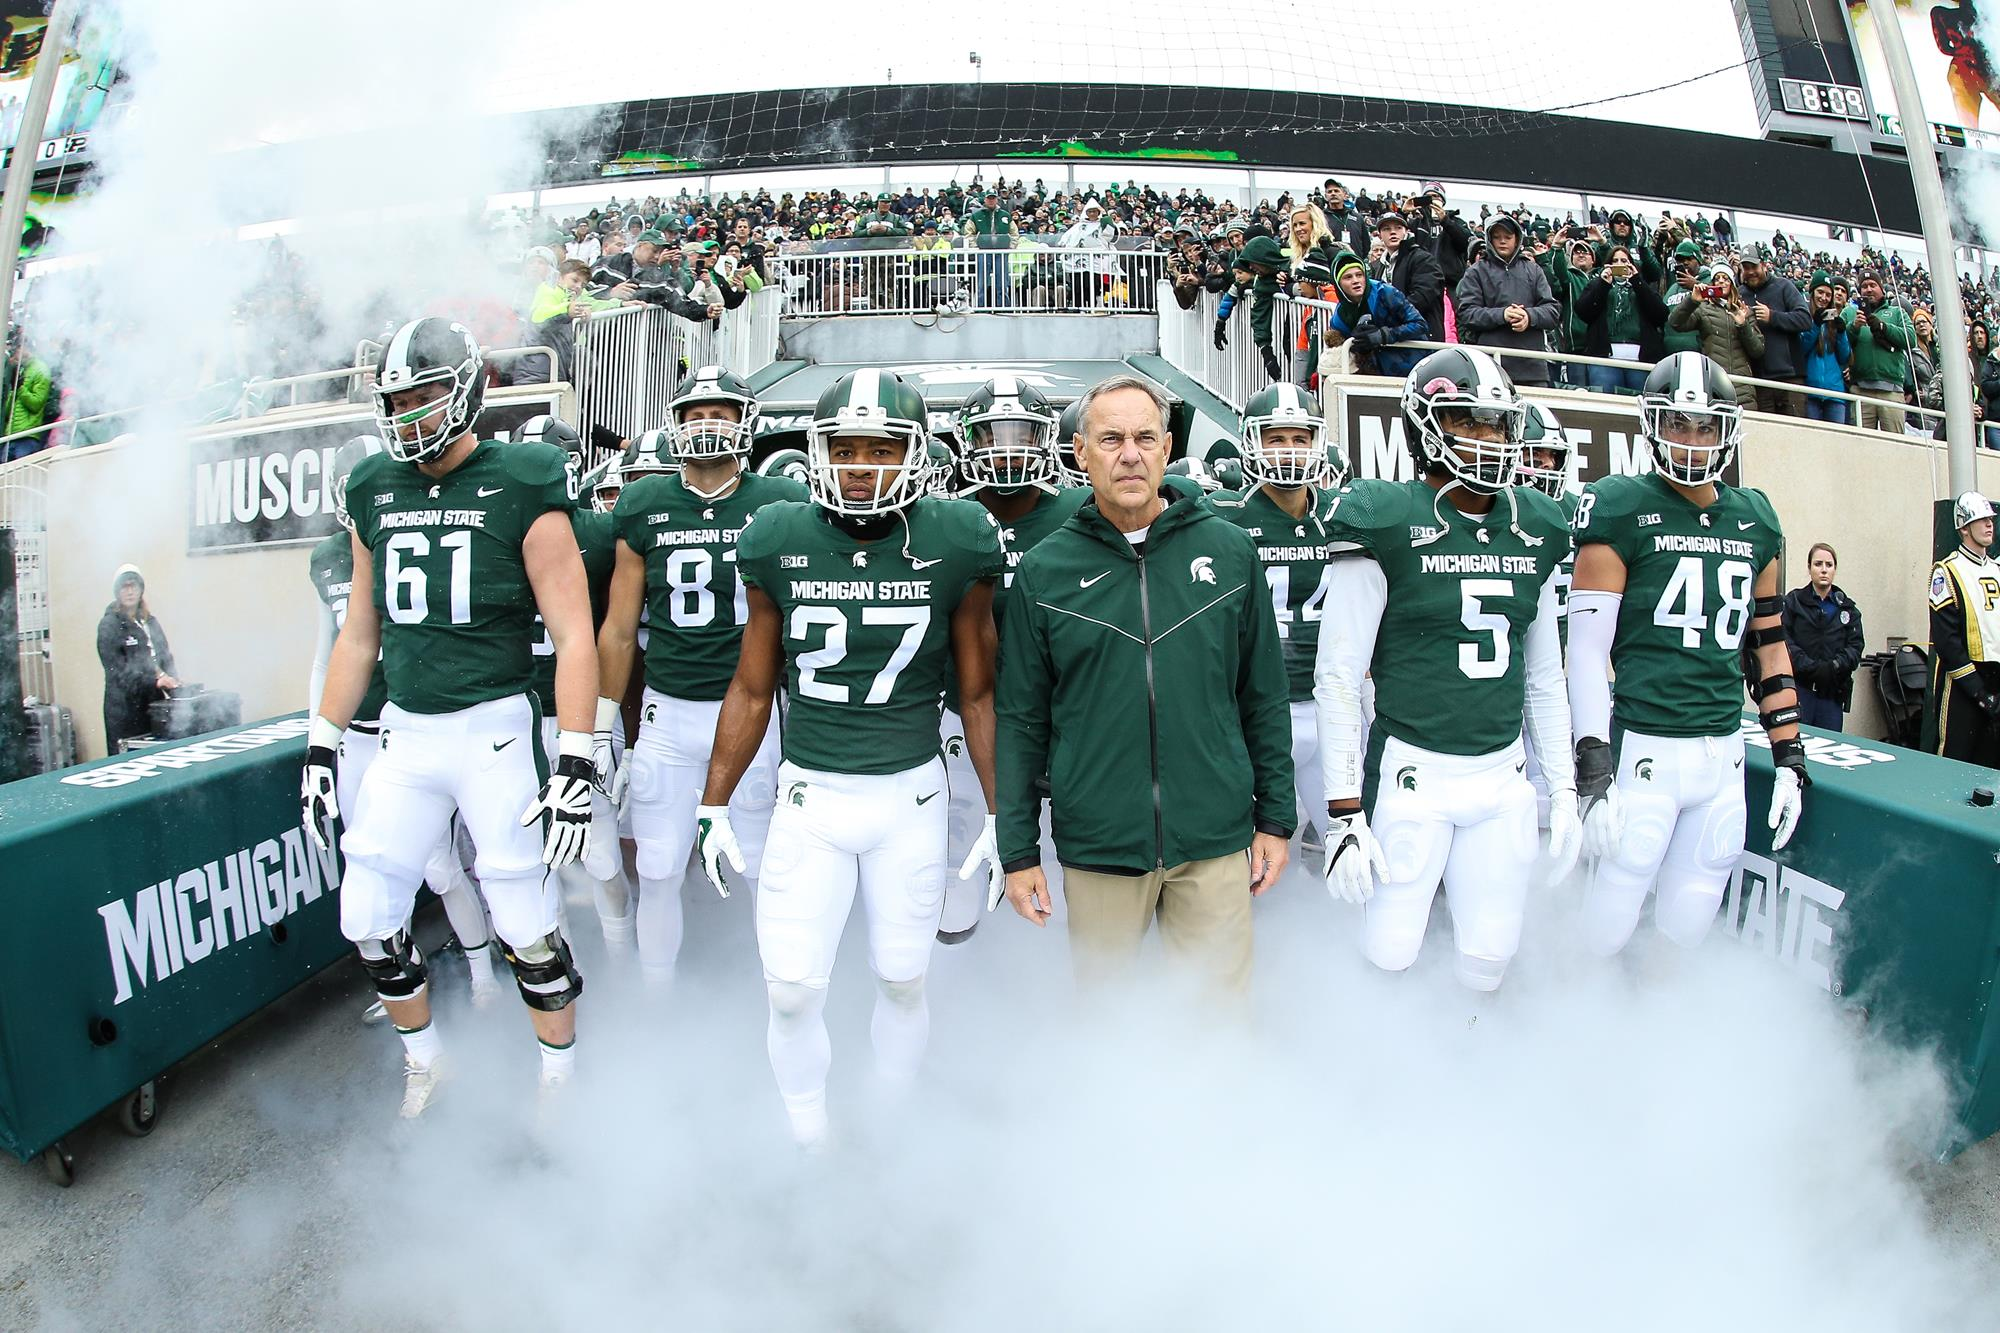 2007 Michigan State Football Roster - Michigan State